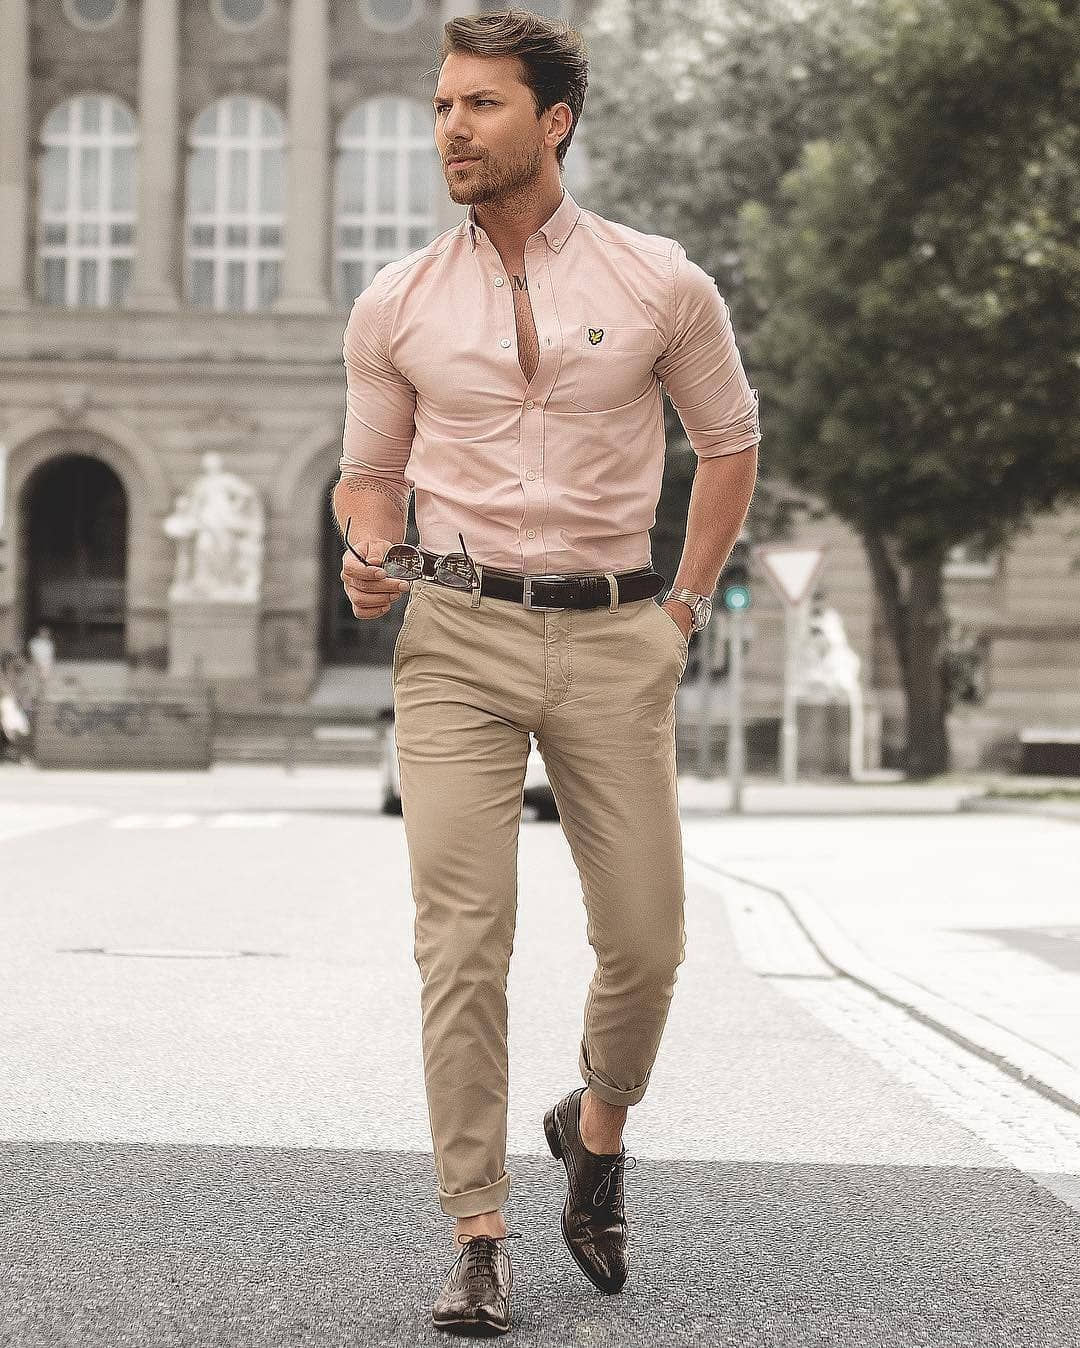 Flannel shirt tied around waist guys  Pin by Dawson Bielecki on Fashion  Pinterest  Mens fashion